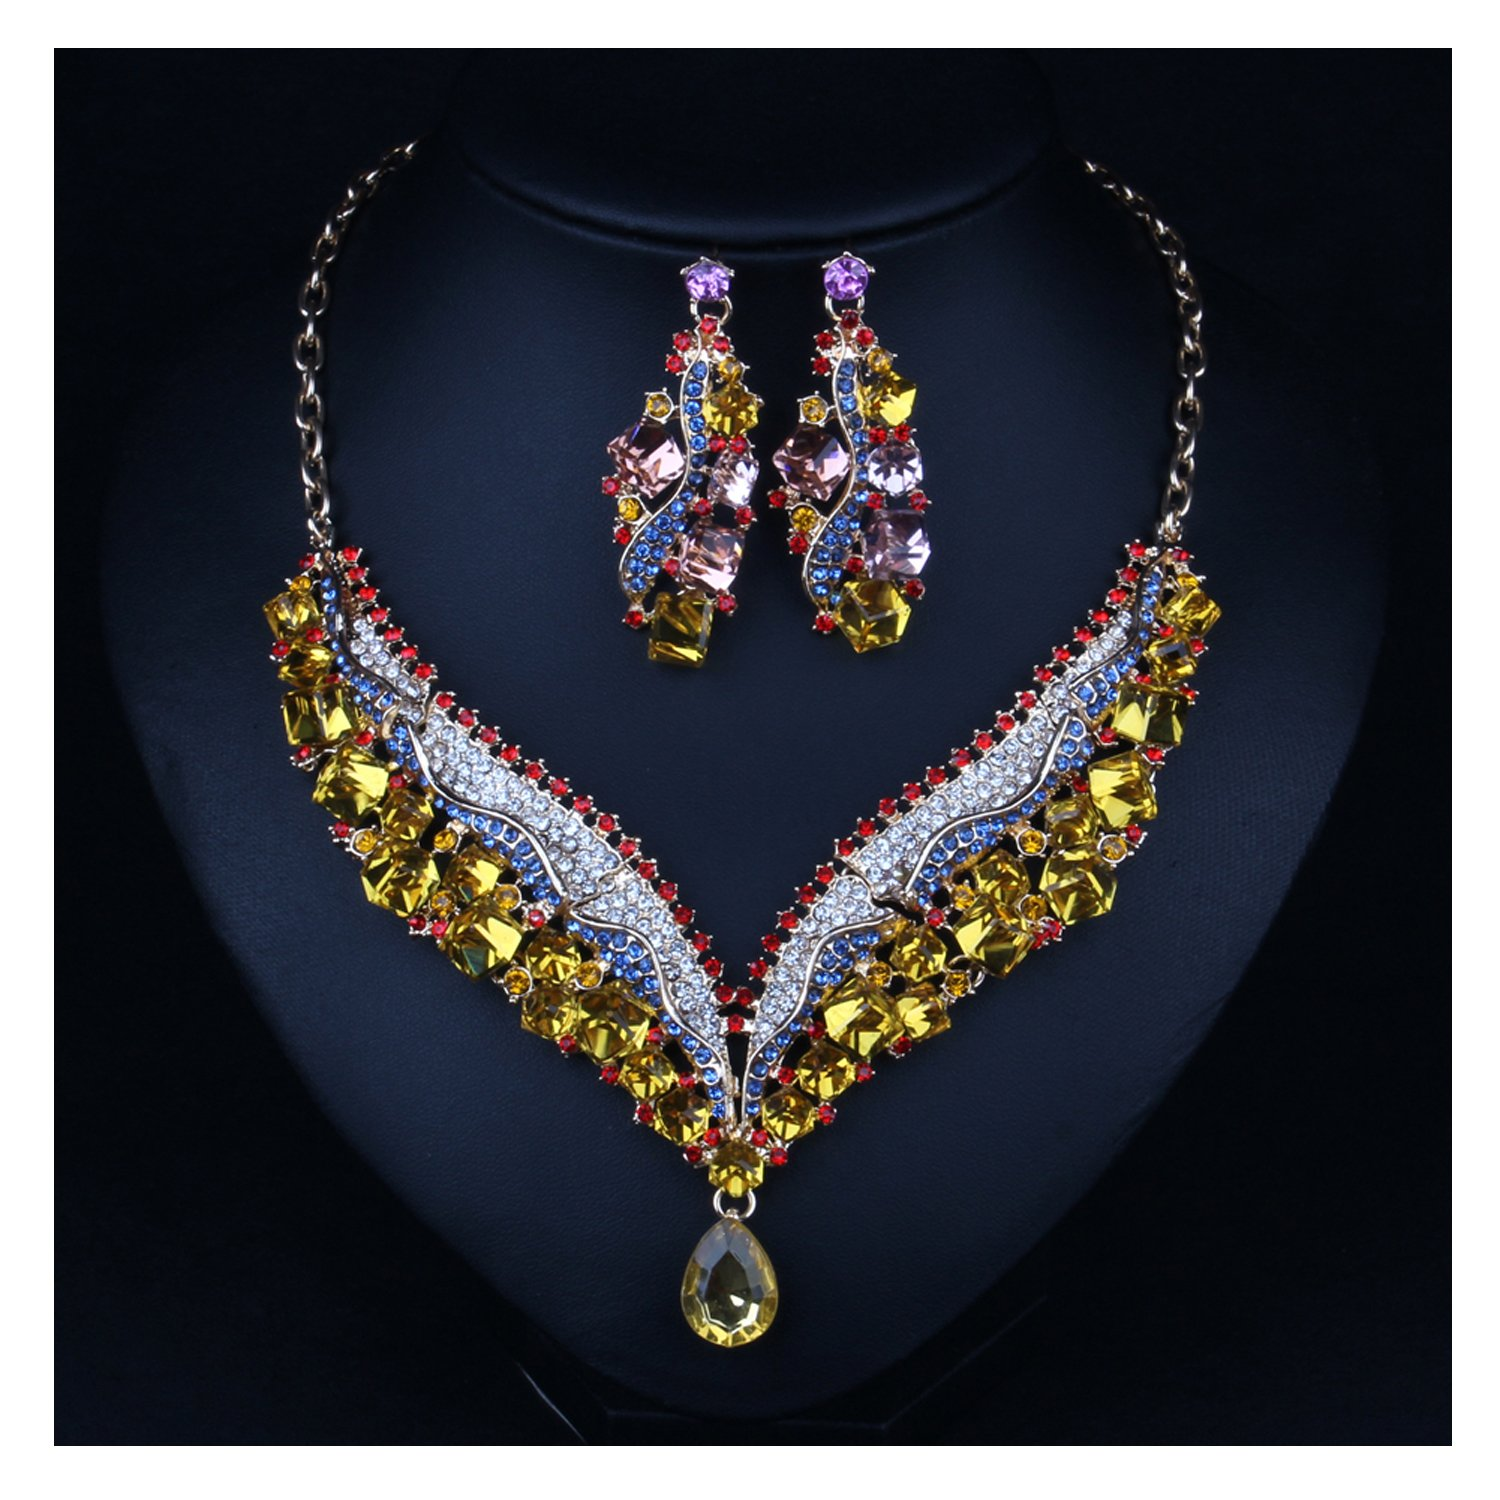 Hamer Charms Bridal Jewellery Crystal Statement Choker Necklace and Earrings Sets Pendant Costume Jewelry Women (Yellow)